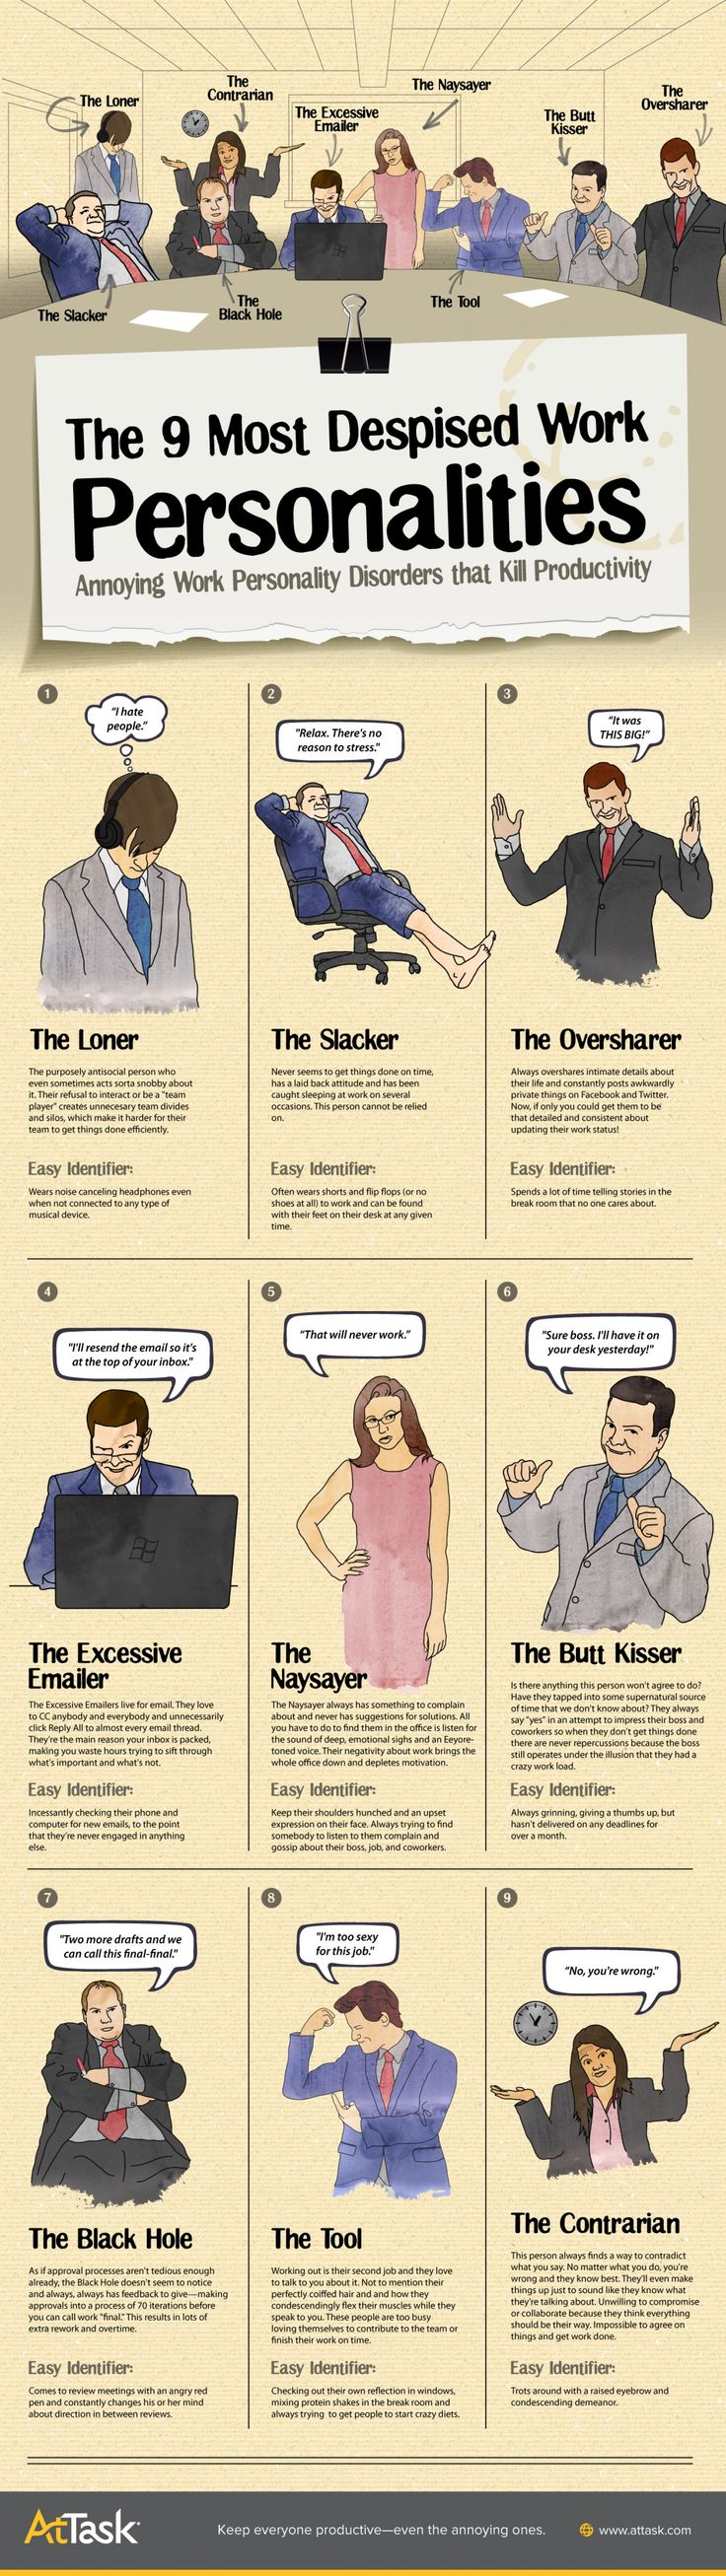 Recognise any of these workplace personalities? Psychology-based development tools needed here!